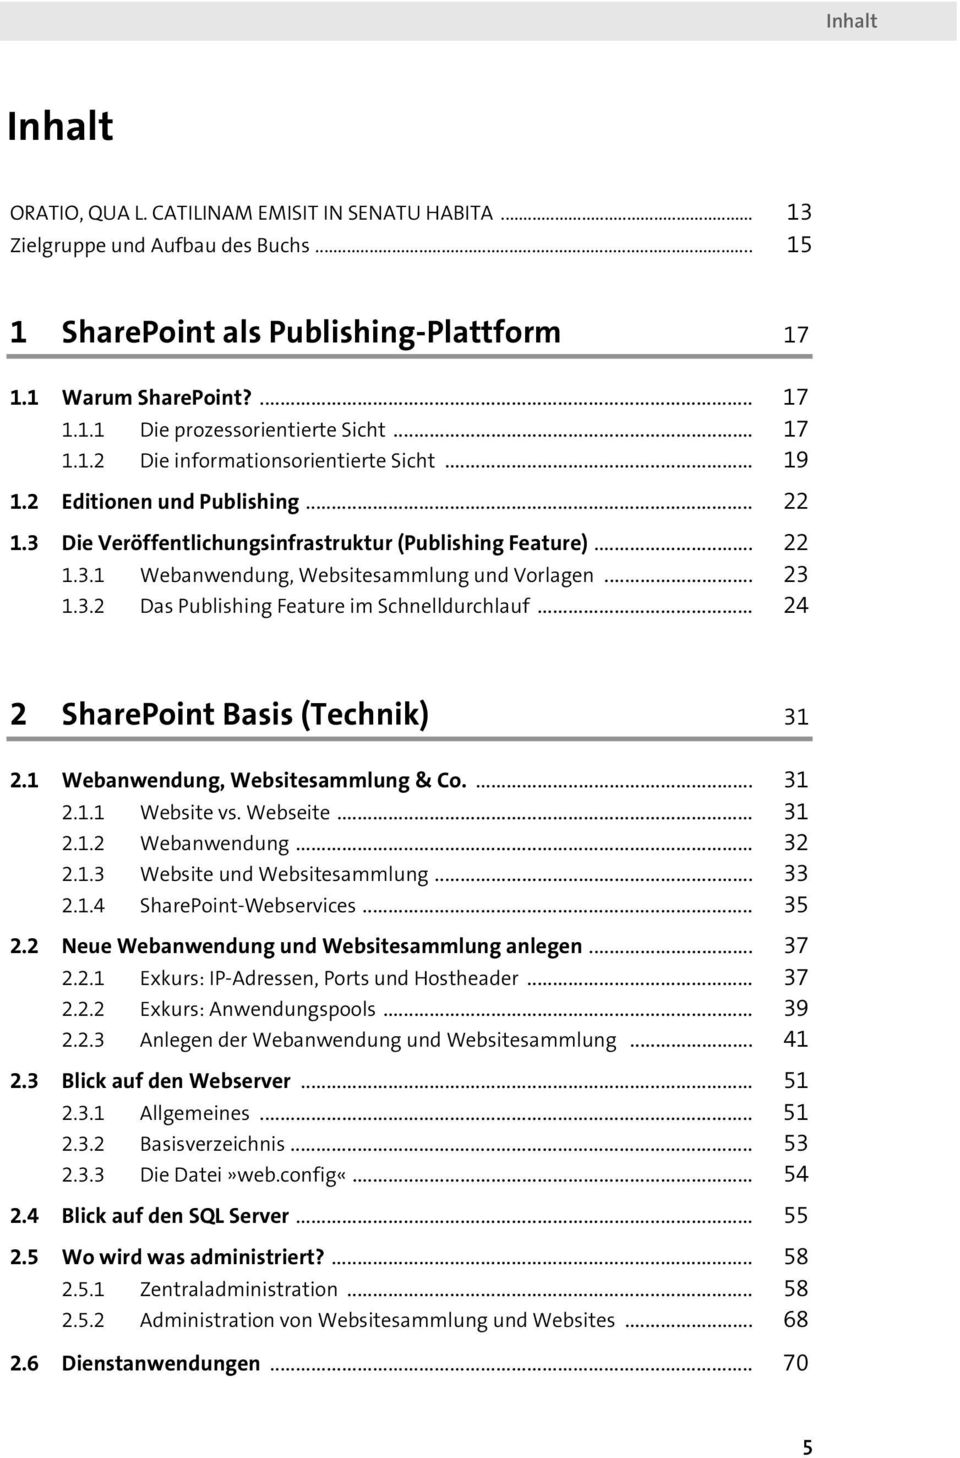 .. 23 1.3.2 Das Publishing Feature im Schnelldurchlauf... 24 2 SharePoint Basis (Technik) 31 2.1 Webanwendung, Websitesammlung & Co.... 31 2.1.1 Website vs. Webseite... 31 2.1.2 Webanwendung... 32 2.